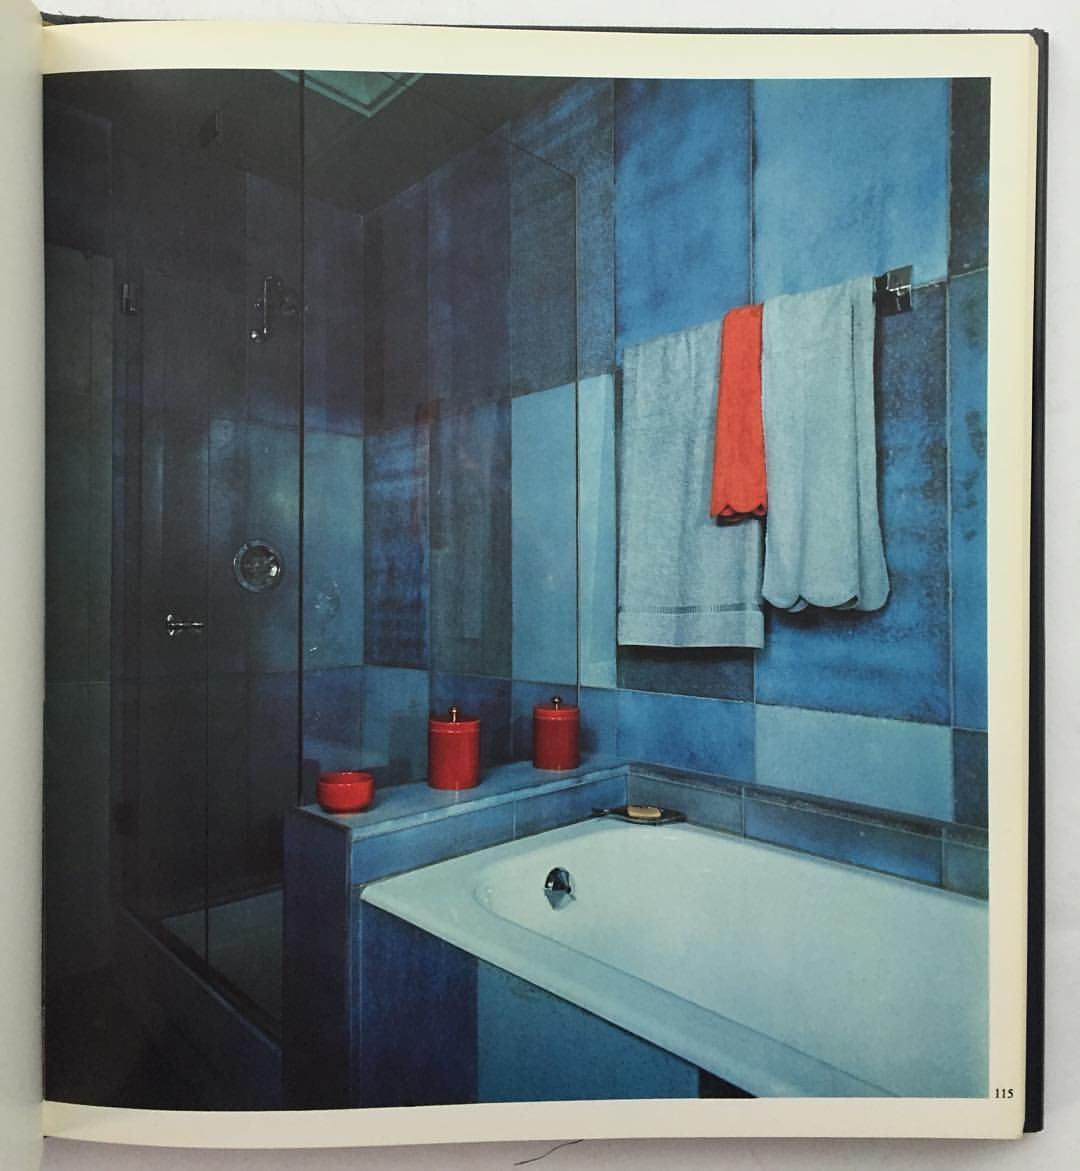 Deeply moving. Historic bathroom dream from the very great Jansen ...